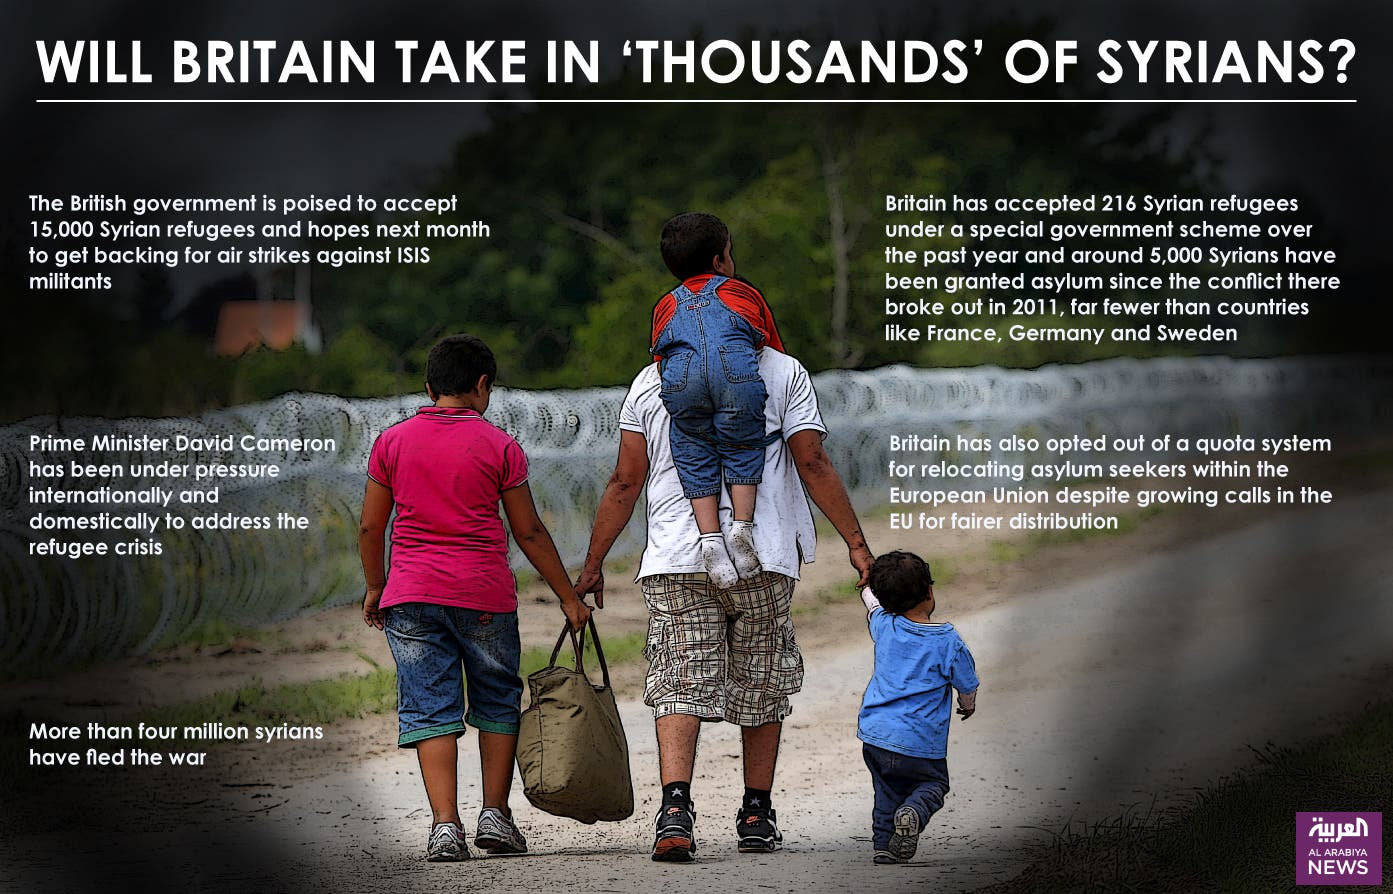 Infographic: Will Britain take in 'thousands' of Syrians?